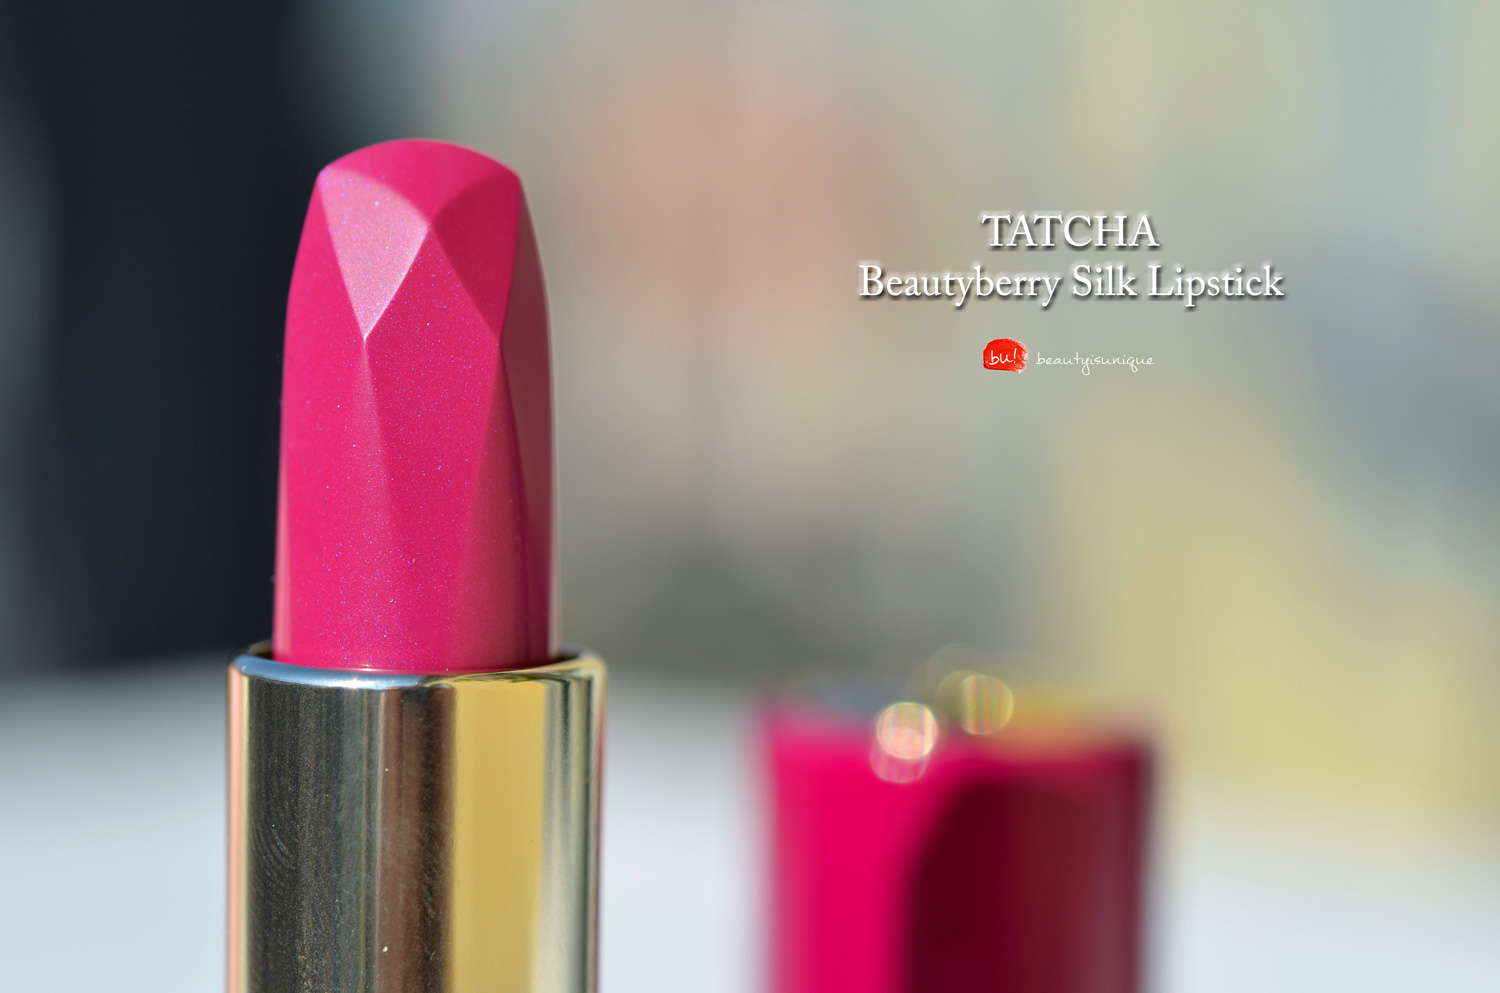 Tatcha-beautyberry-silk-lipstick